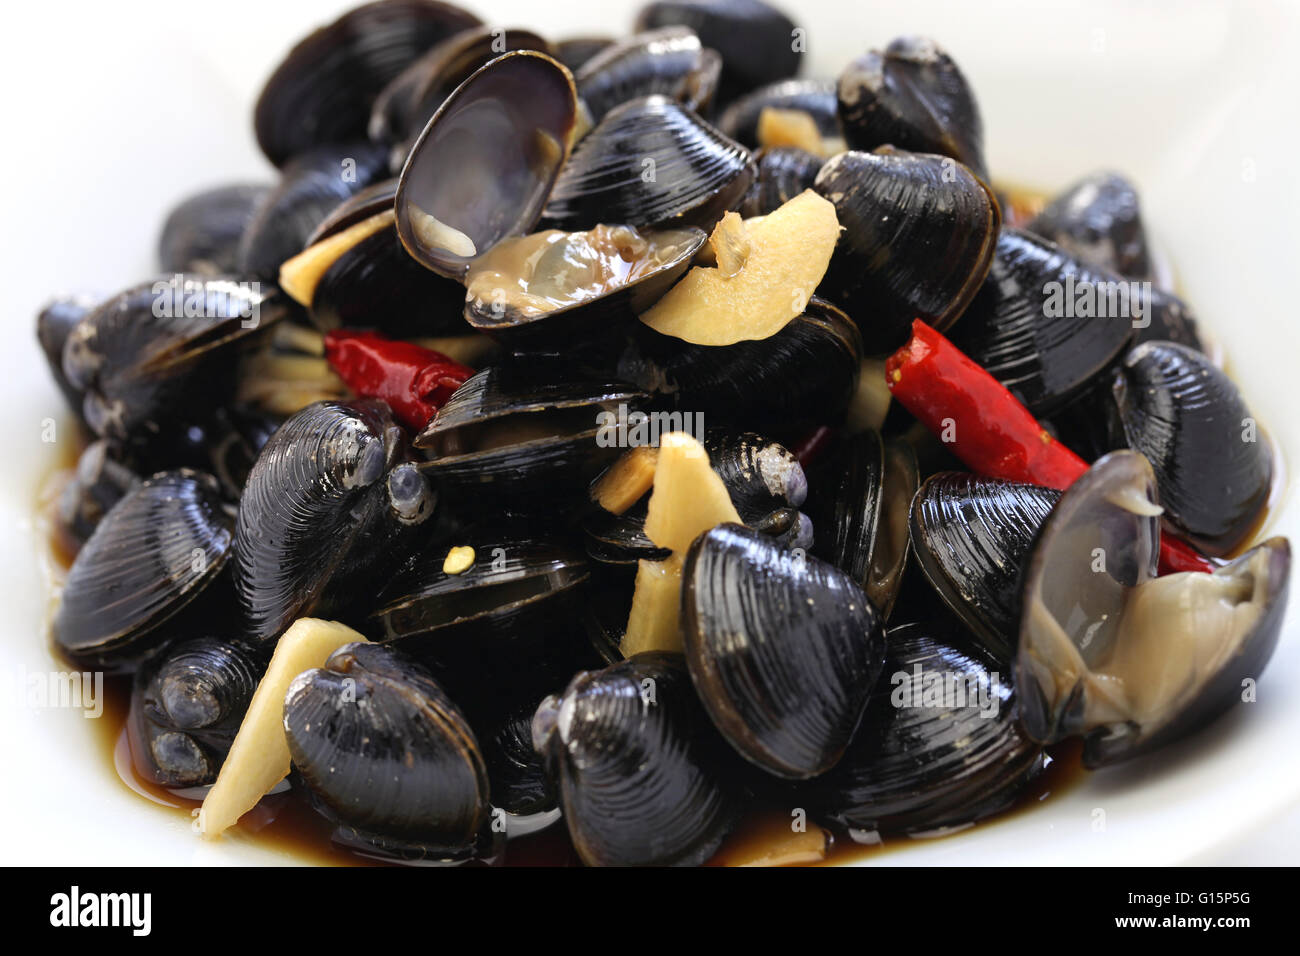 freshwater clam ceviche, marinated river clam, pickled asian clams, taiwan food appetizer - Stock Image